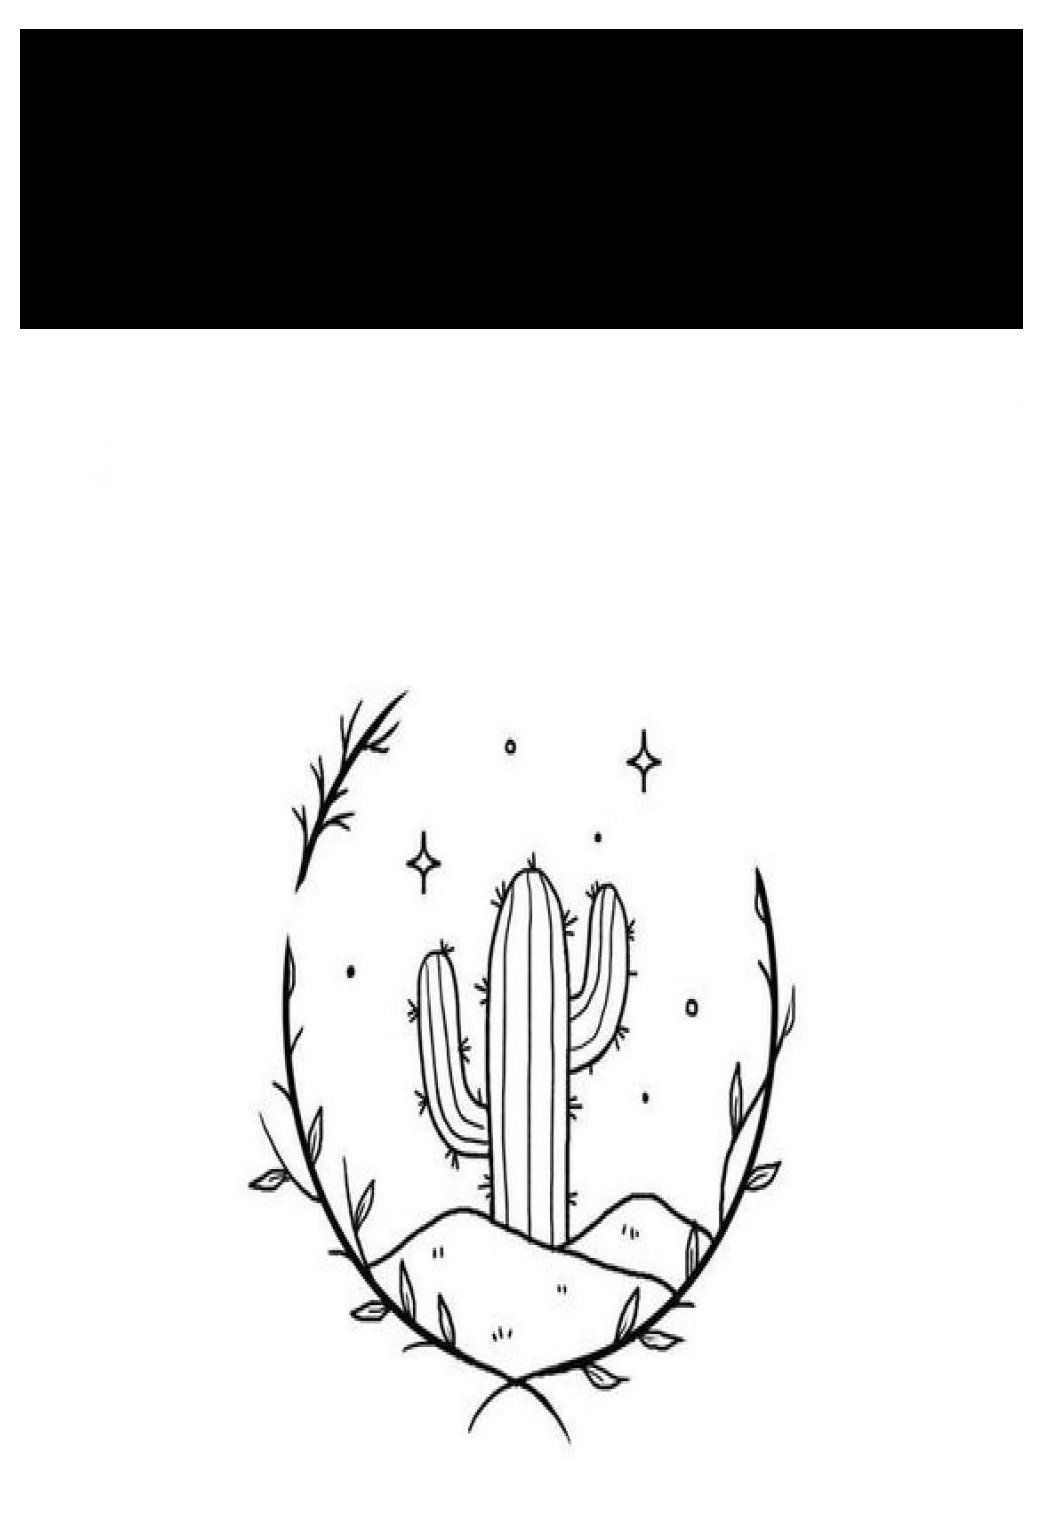 cactus drawing simple